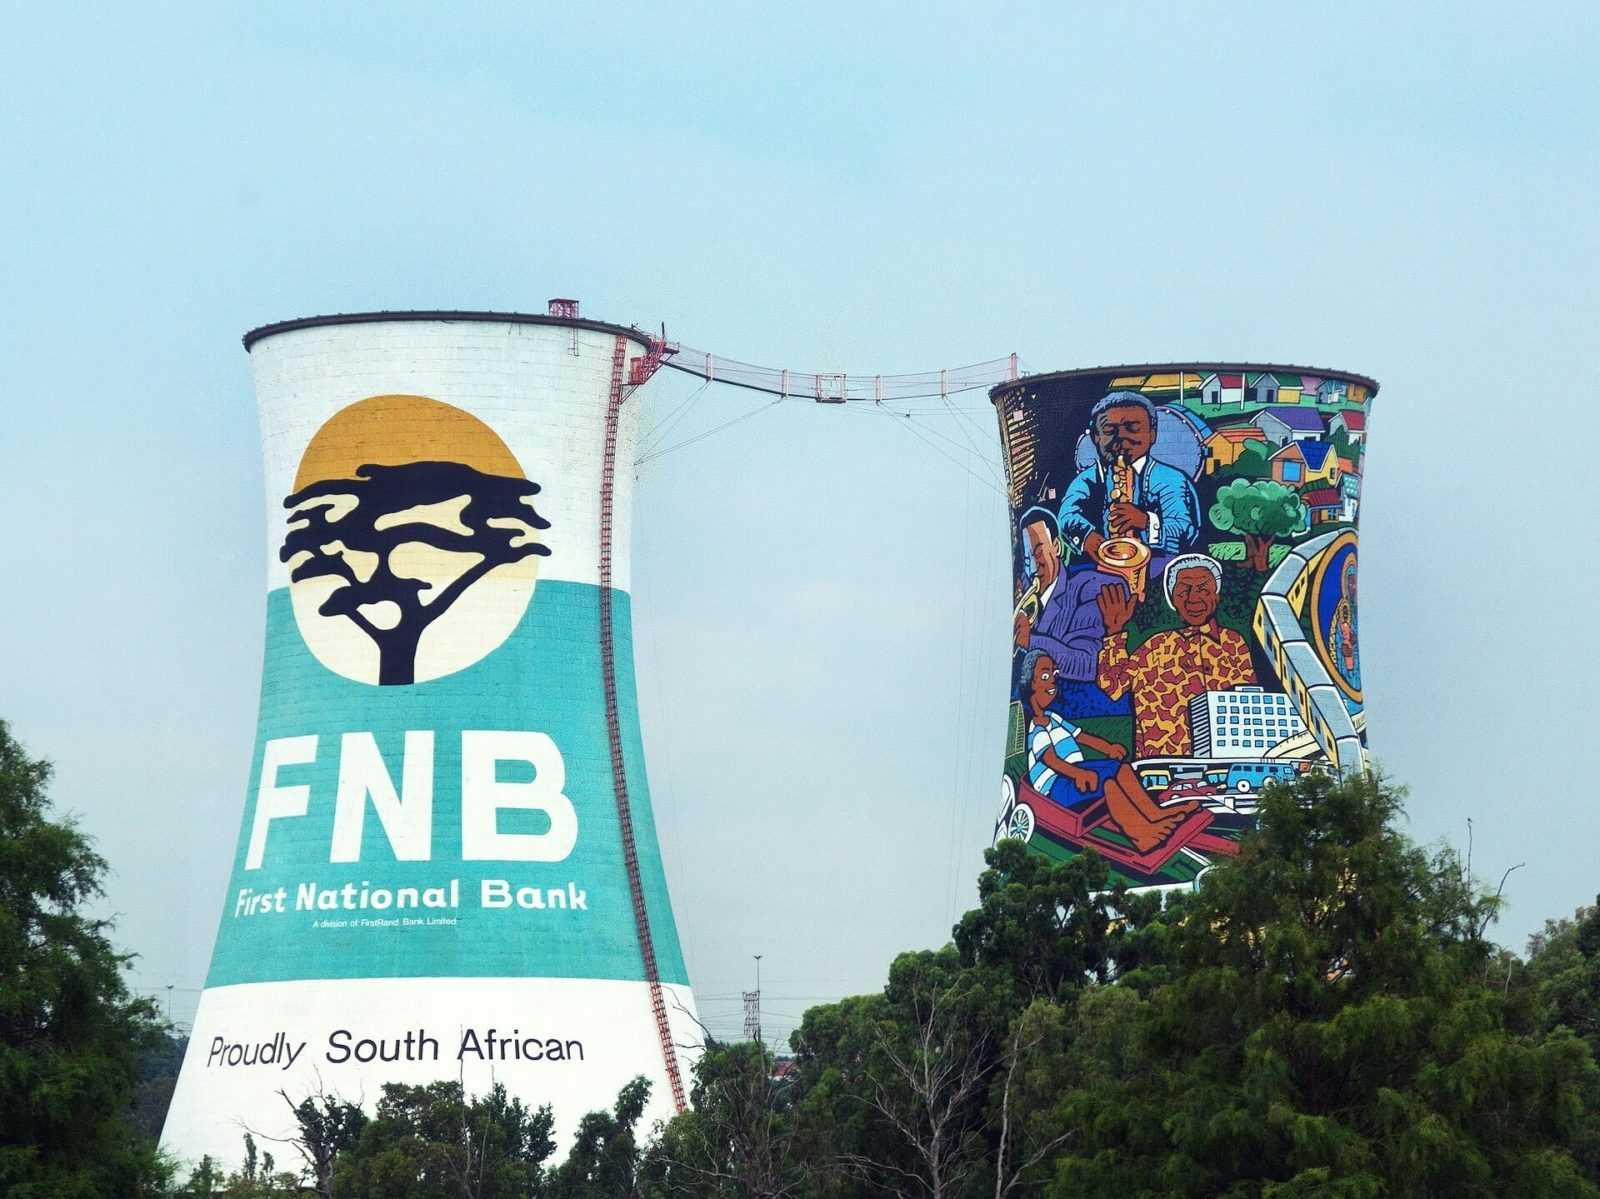 Orlando Towers, South Africa